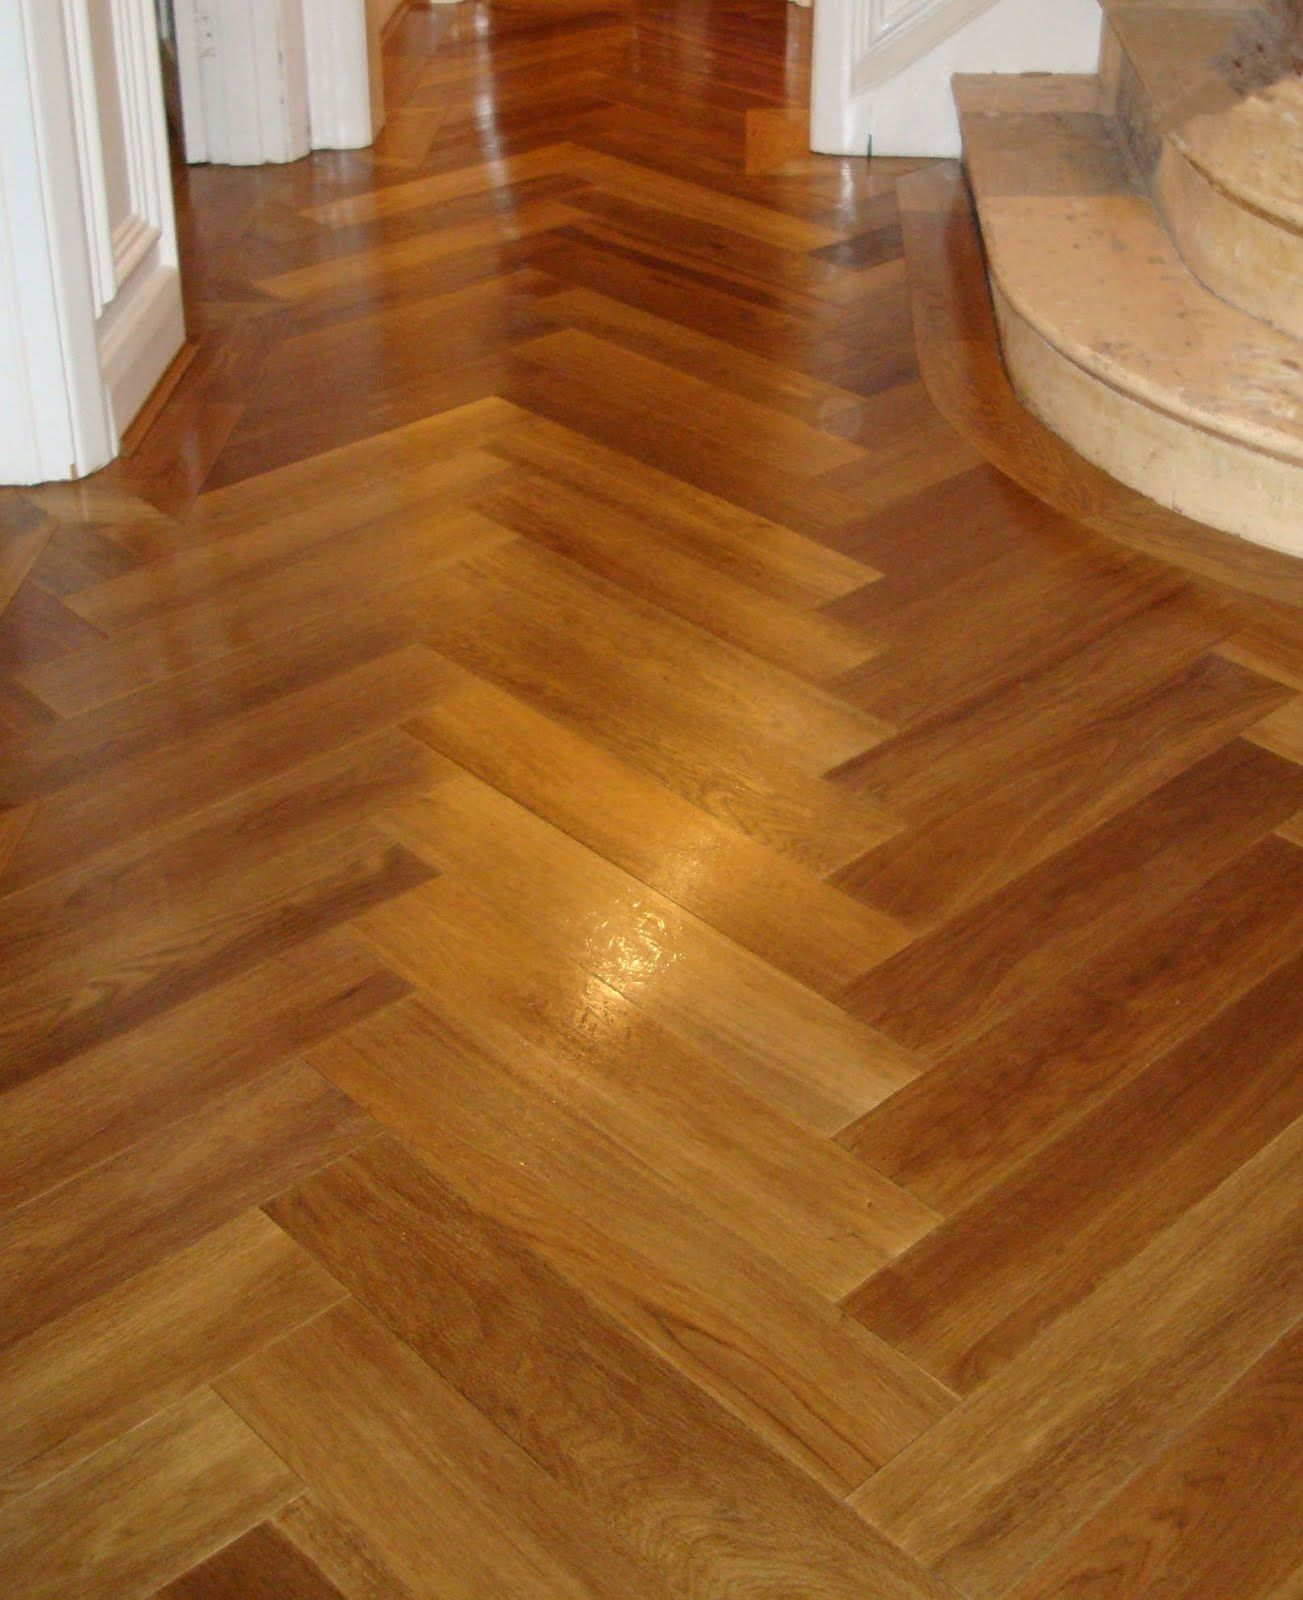 wood flooring ideas wood floorwood floor designwood floor design ideas